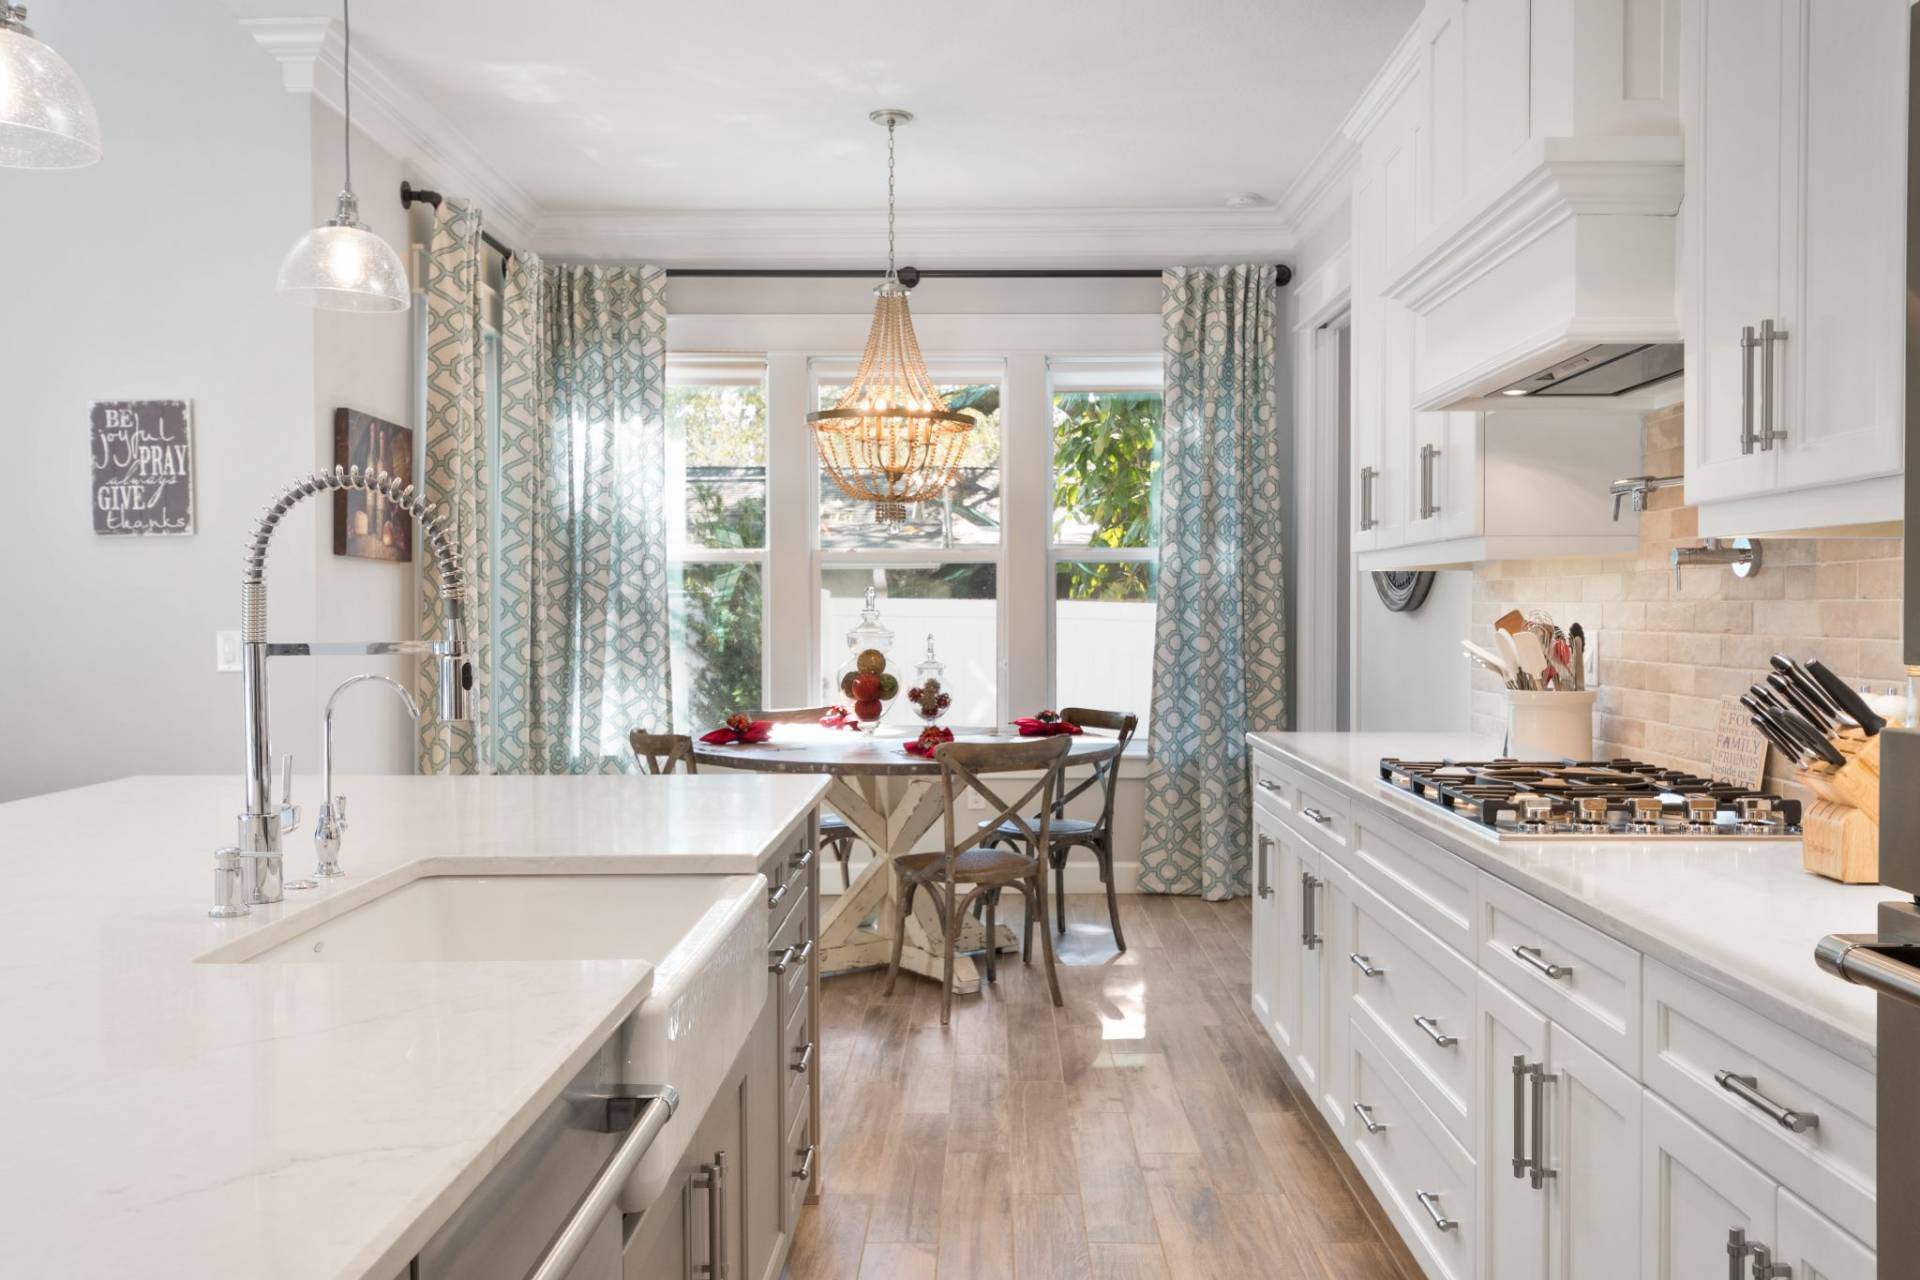 kitchen designed and built by New Legacy Homes, the best South Tampa homebuilder